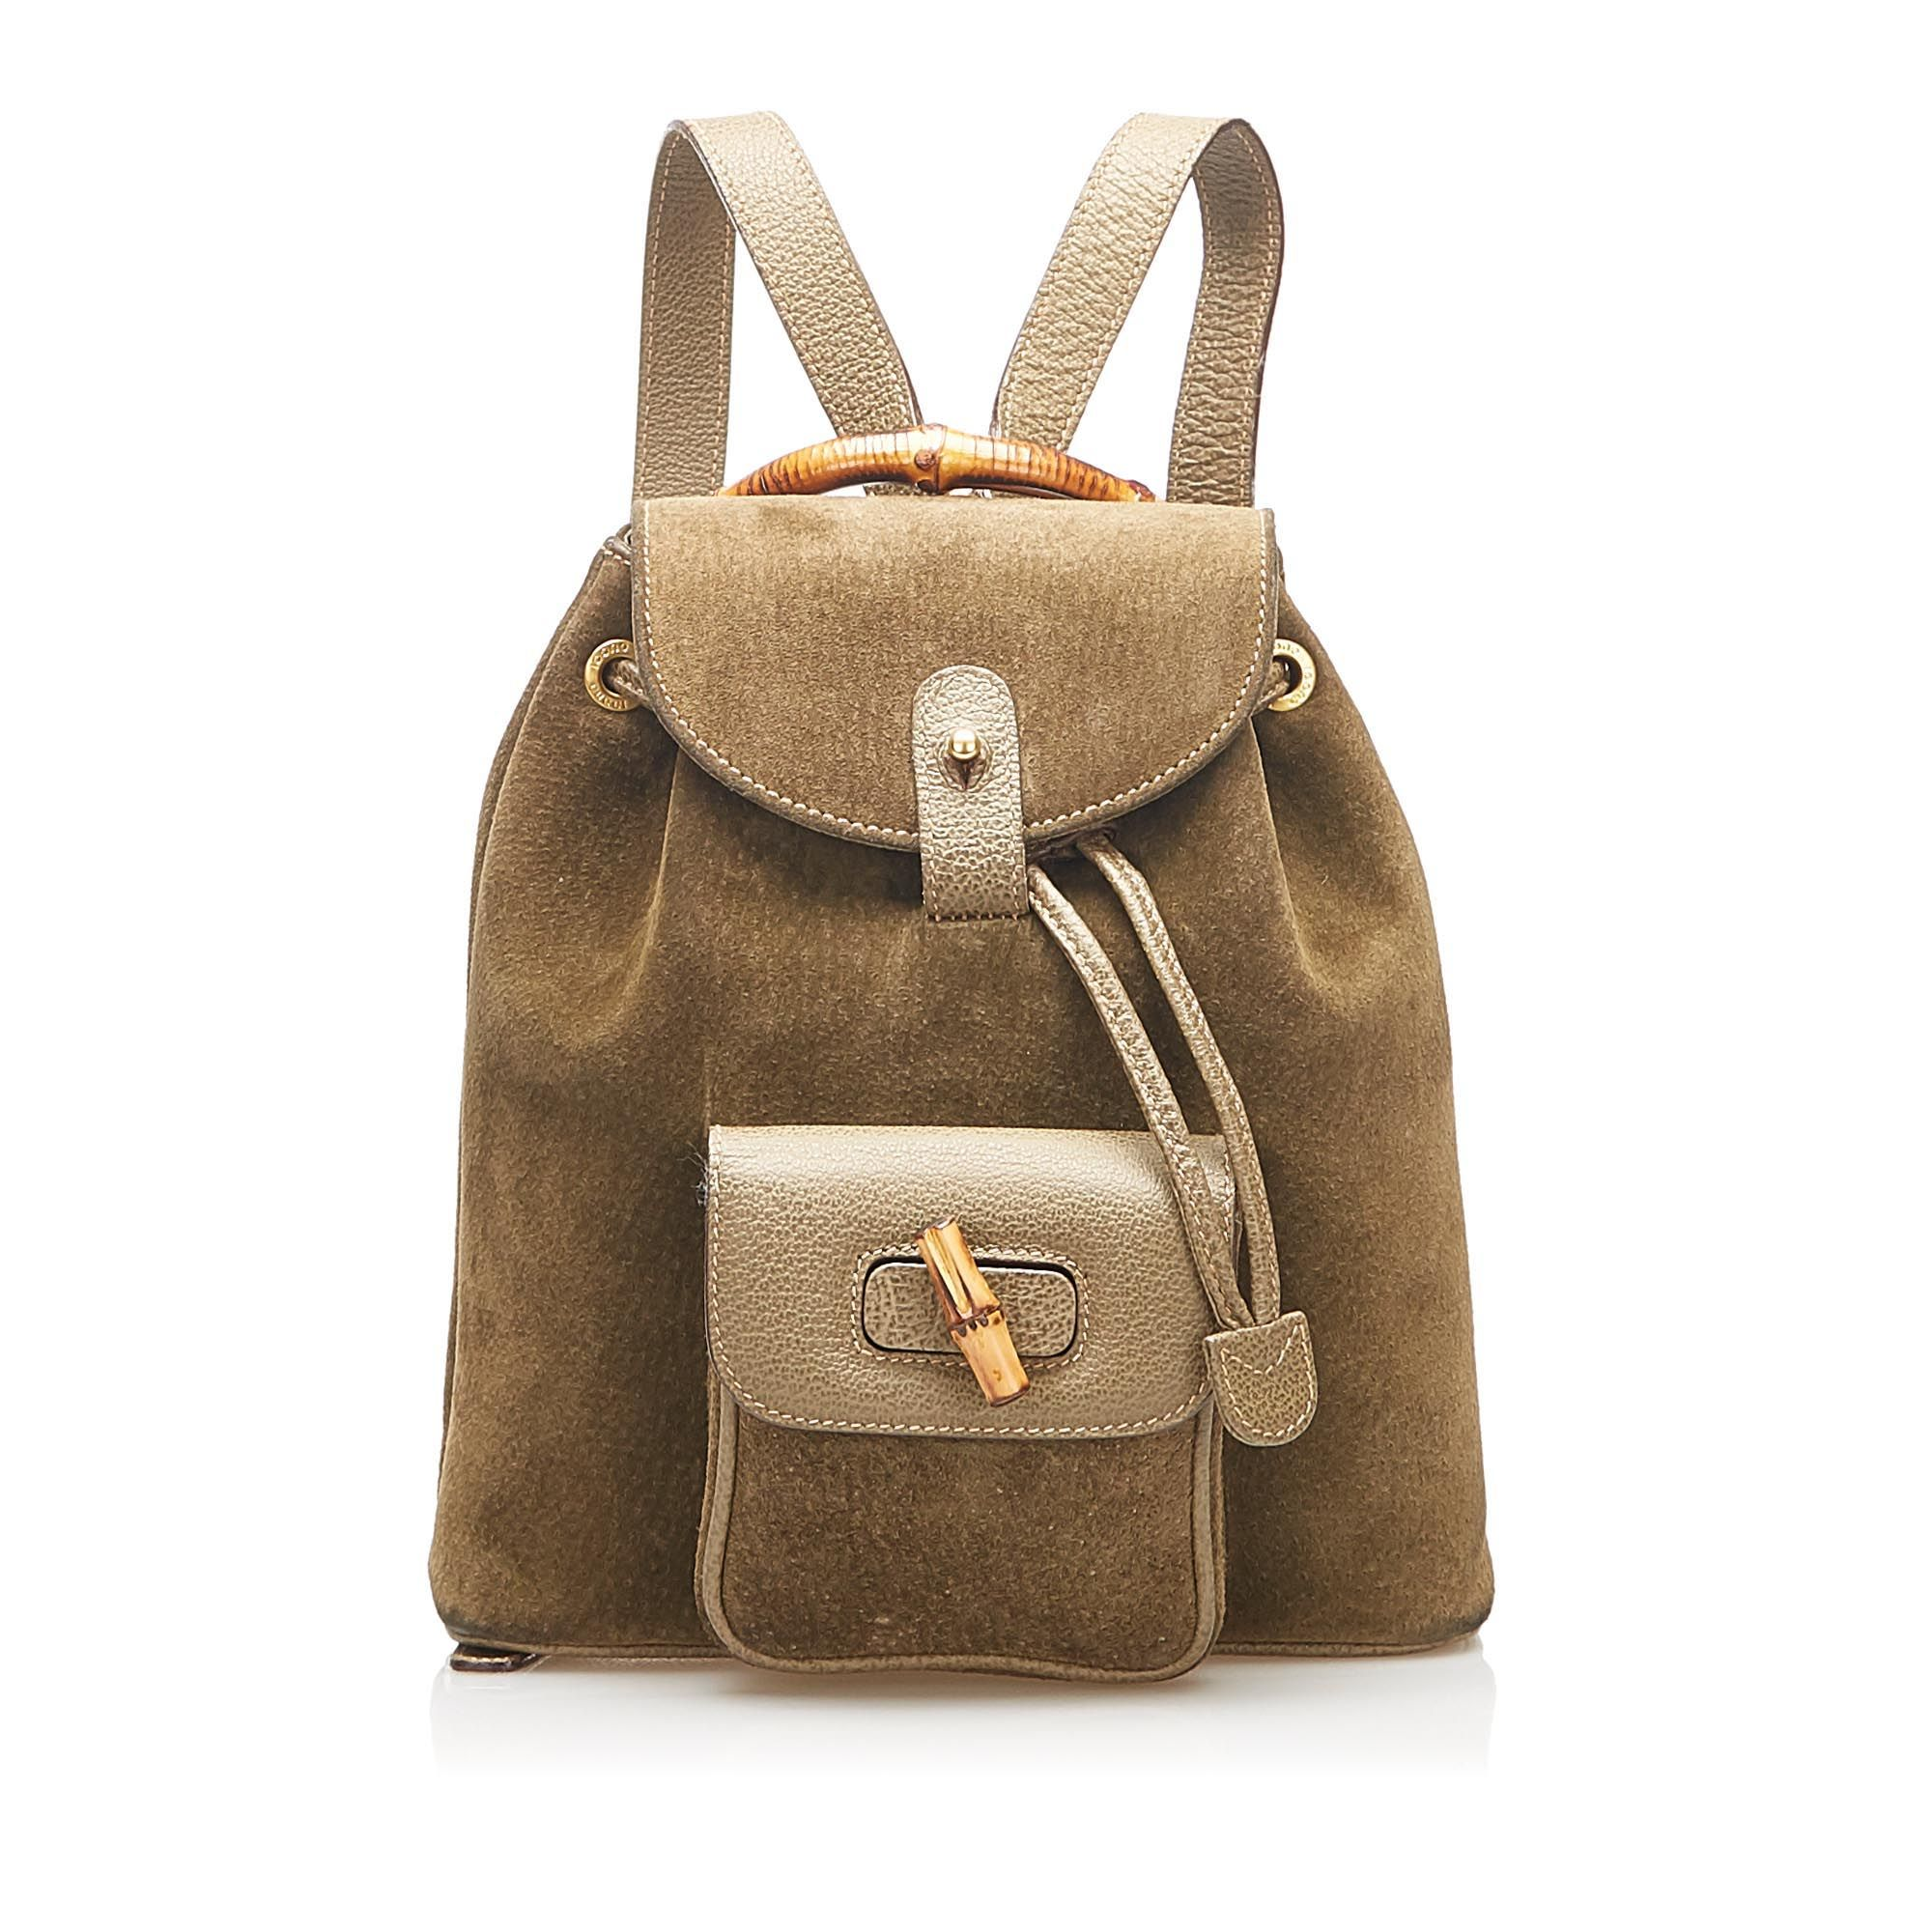 Vintage Gucci Bamboo Suede Backpack Brown